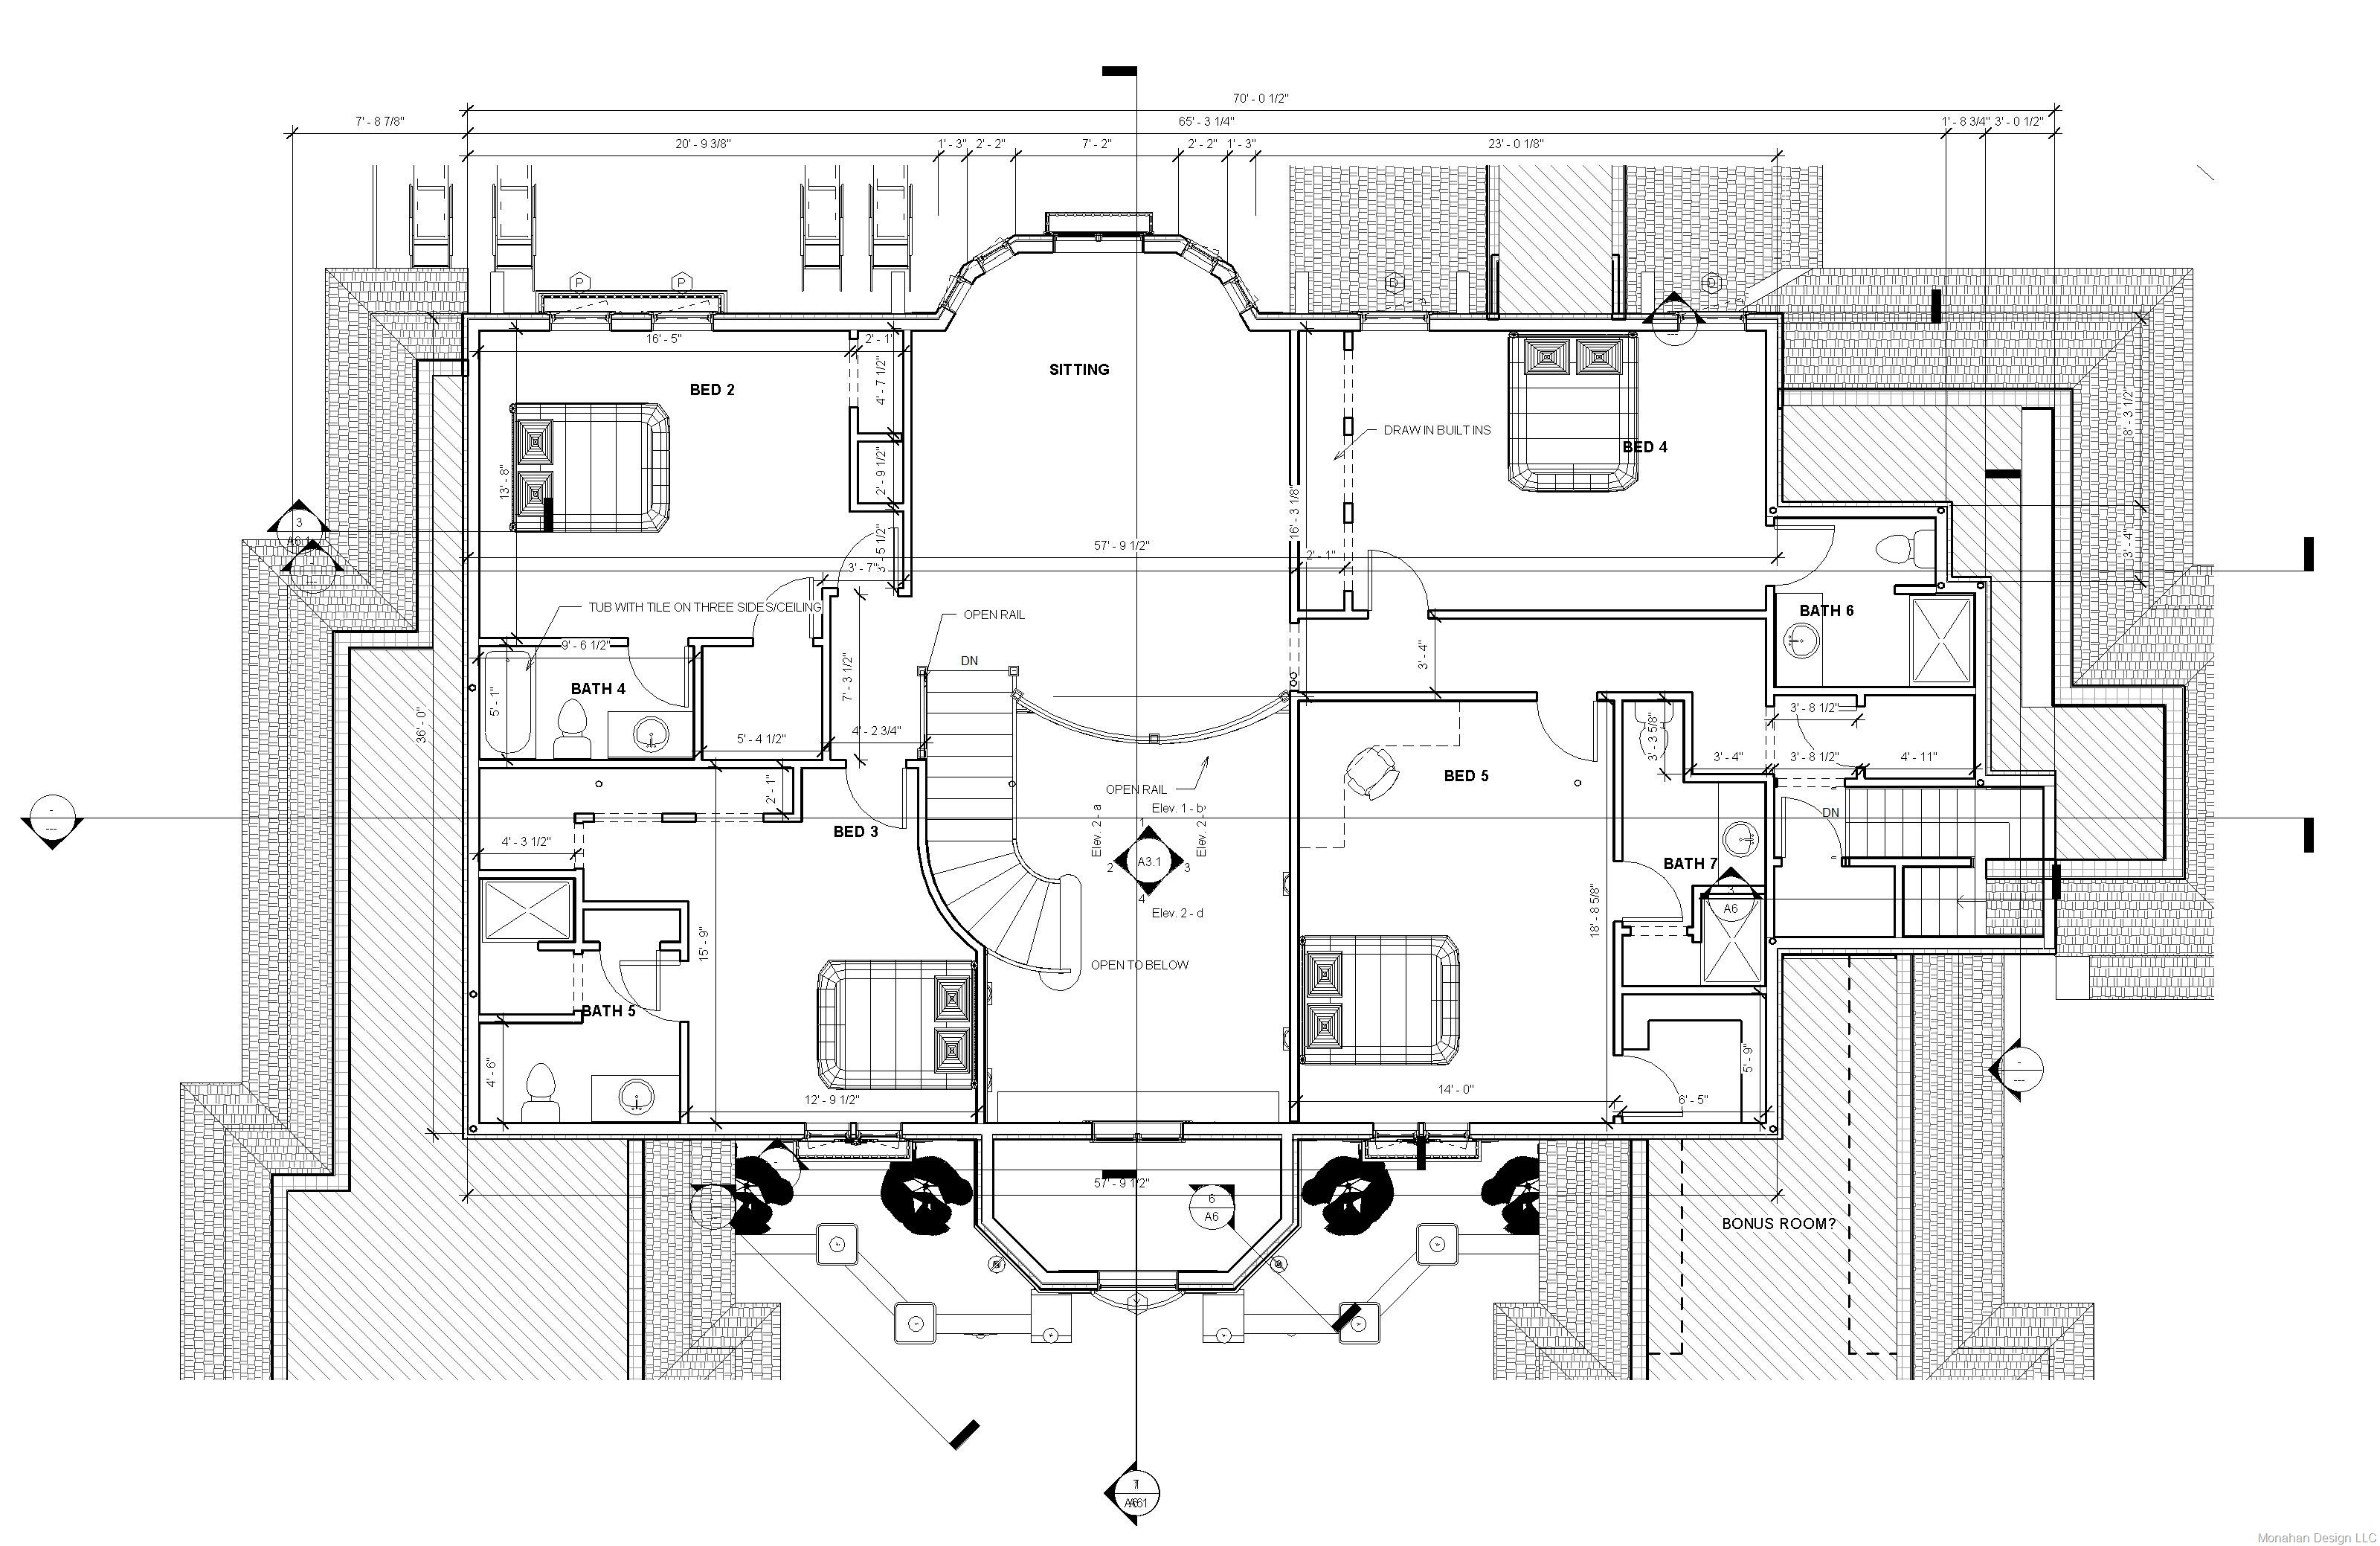 4000 square foot home floor plans home design and style for House plans 4000 to 5000 square feet